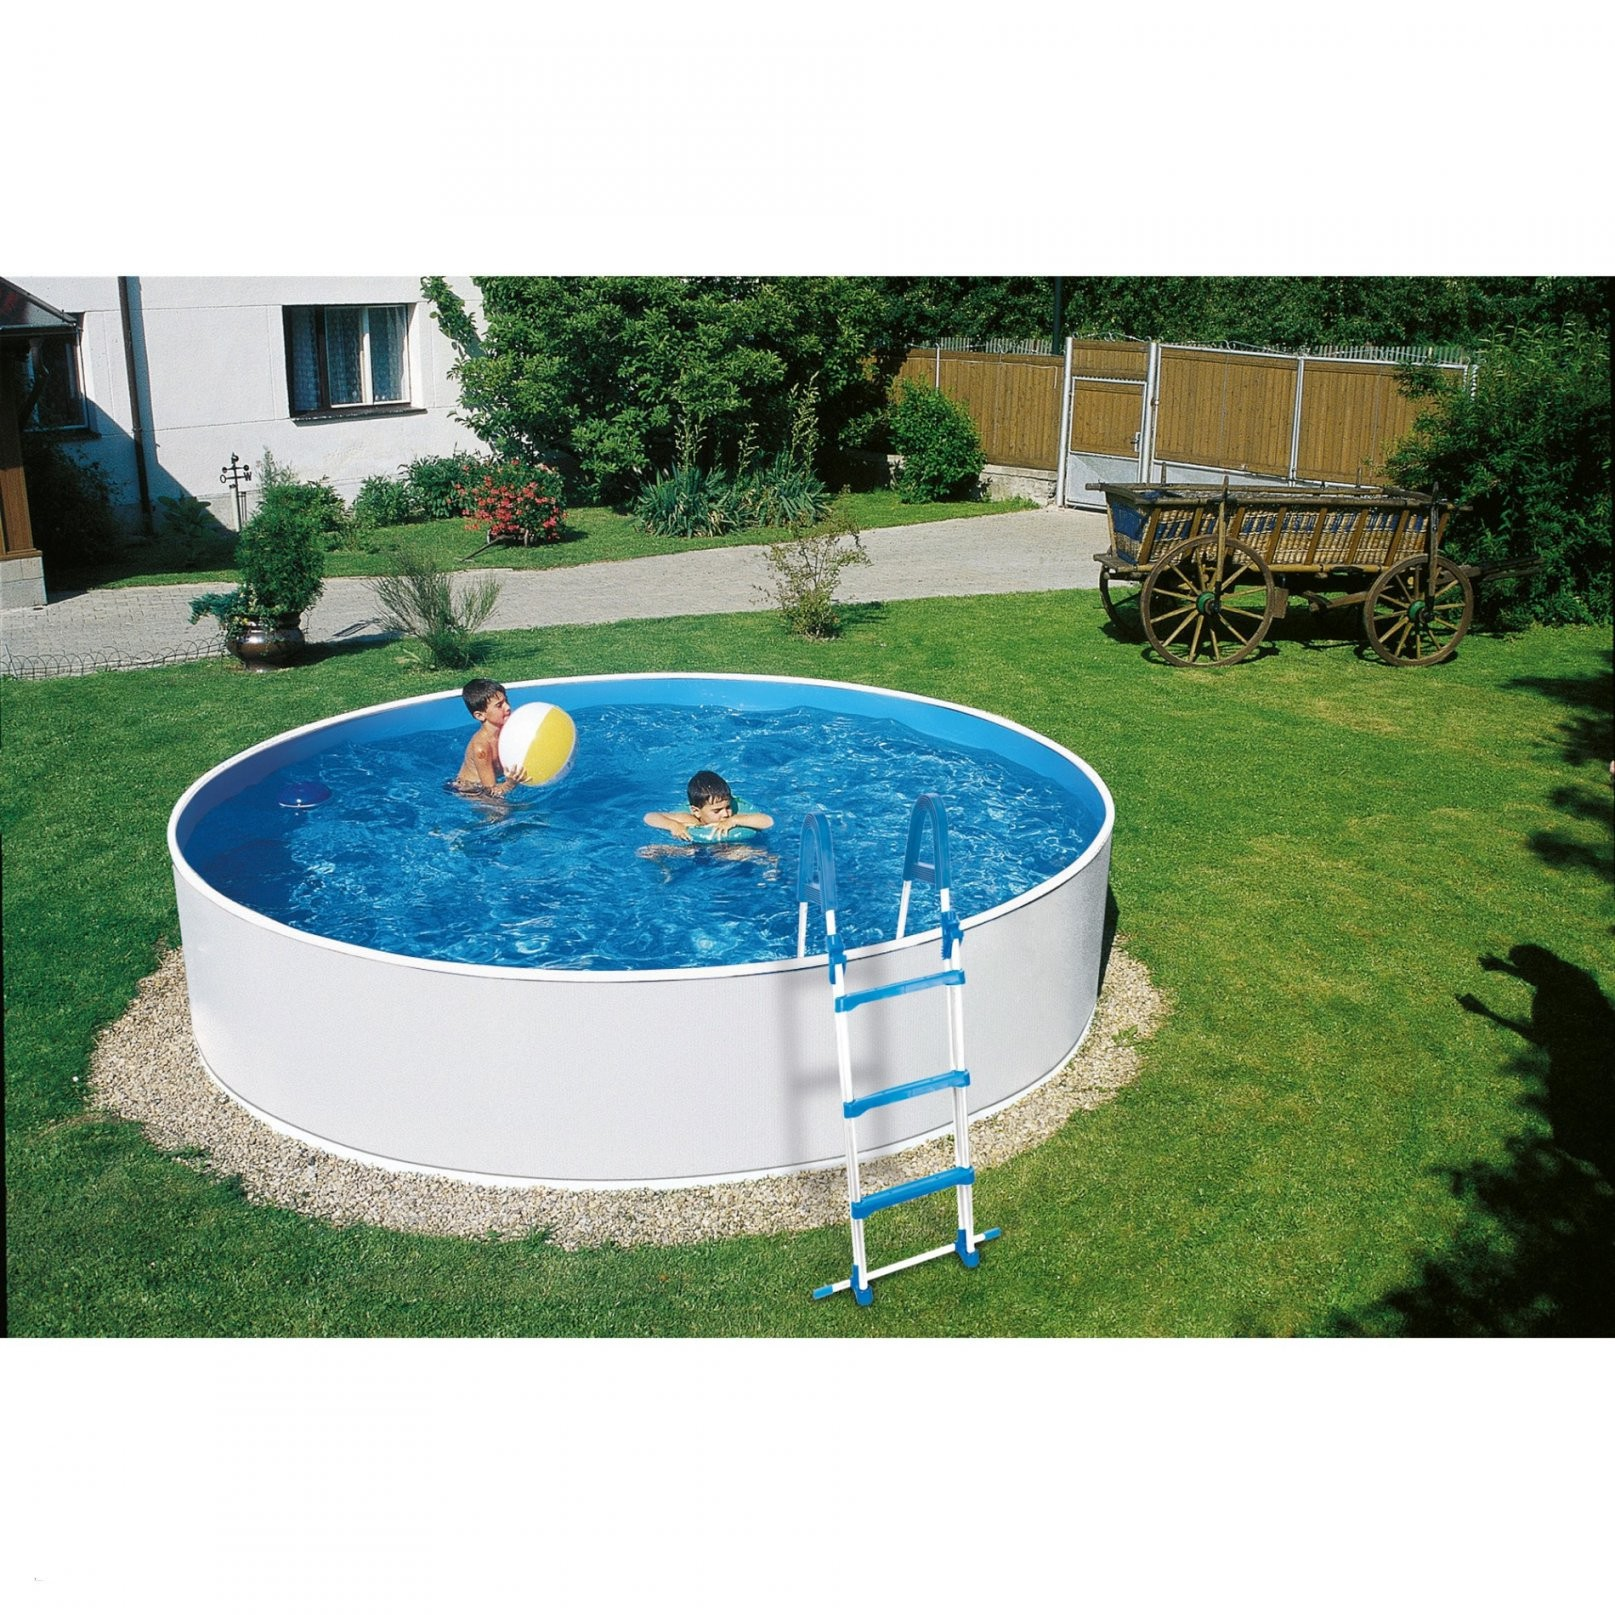 Pool Garten Metall Pool Terrasse Holz My Pool Deck Outside Pinterest Kisten